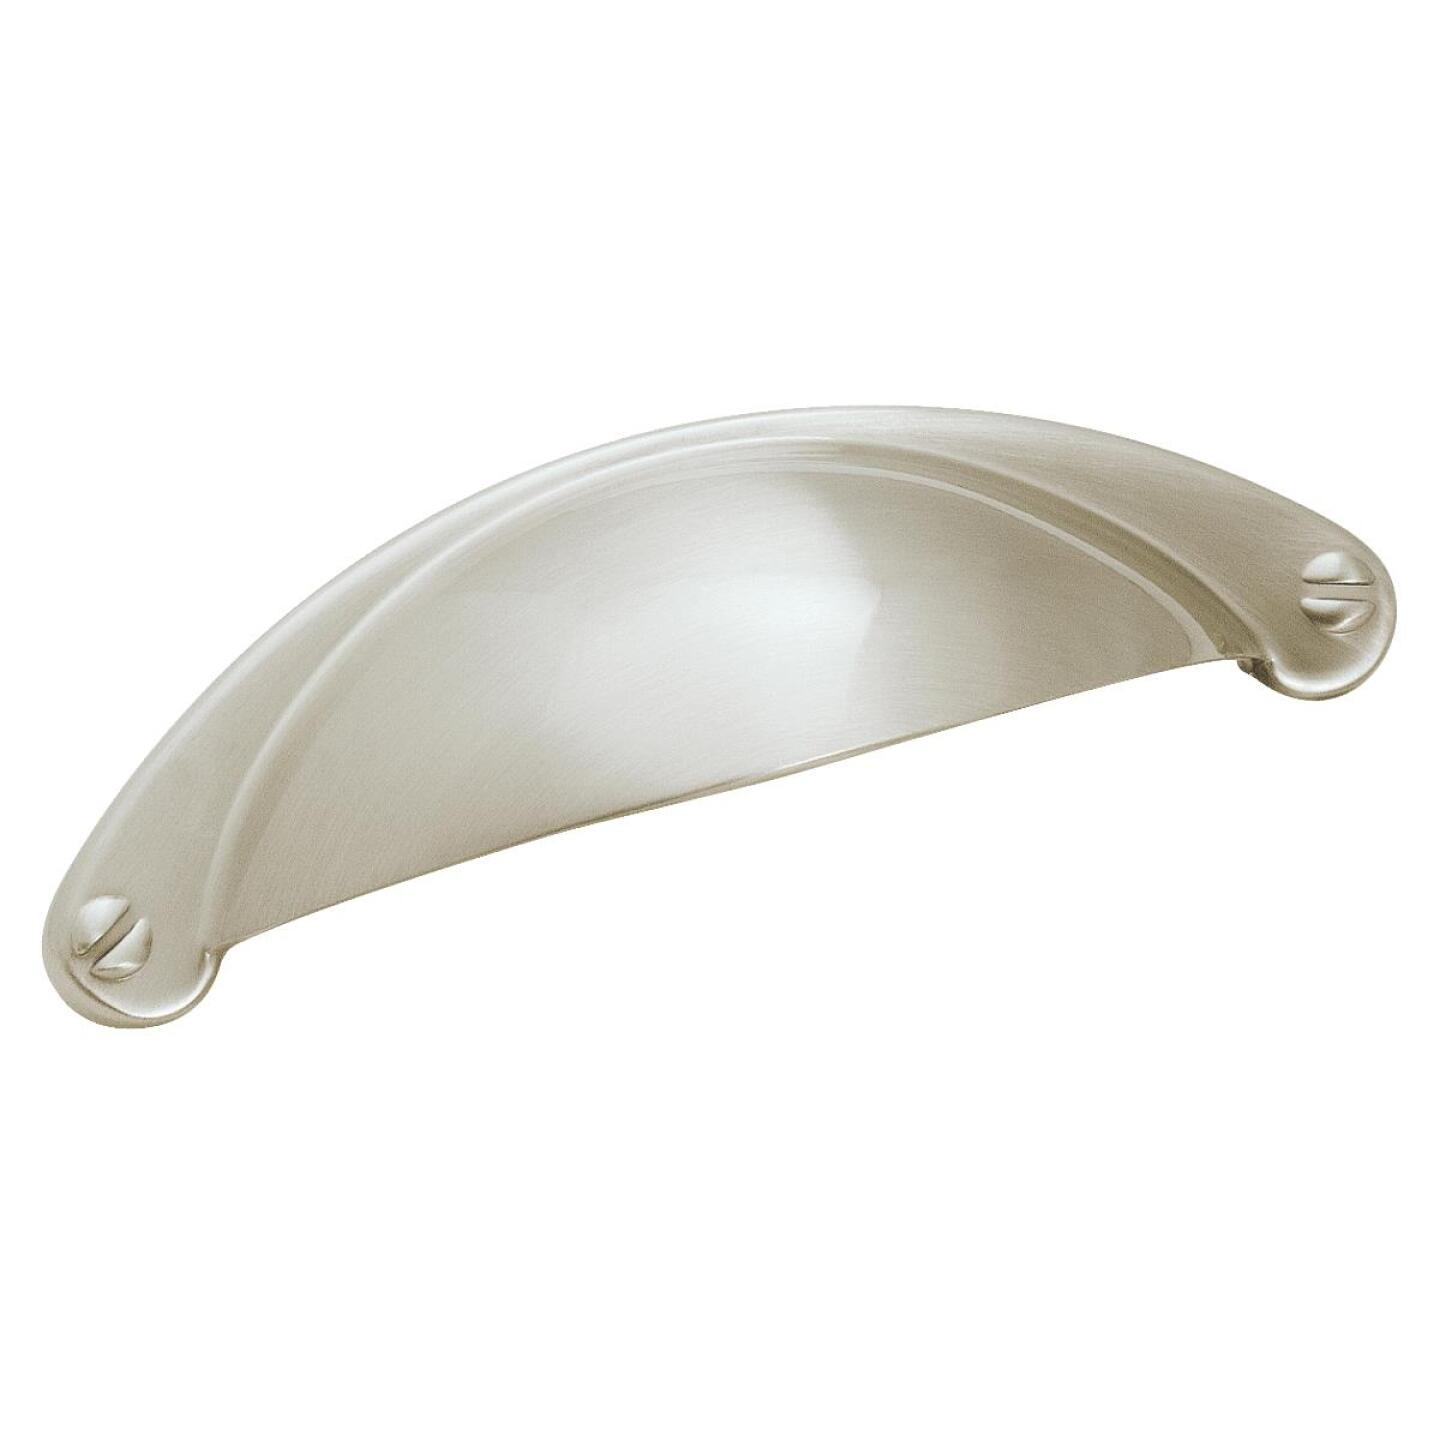 Amerock Essential'z 2-1/2 In. Nickel 2-1/2 In. Cabinet Pull Image 1